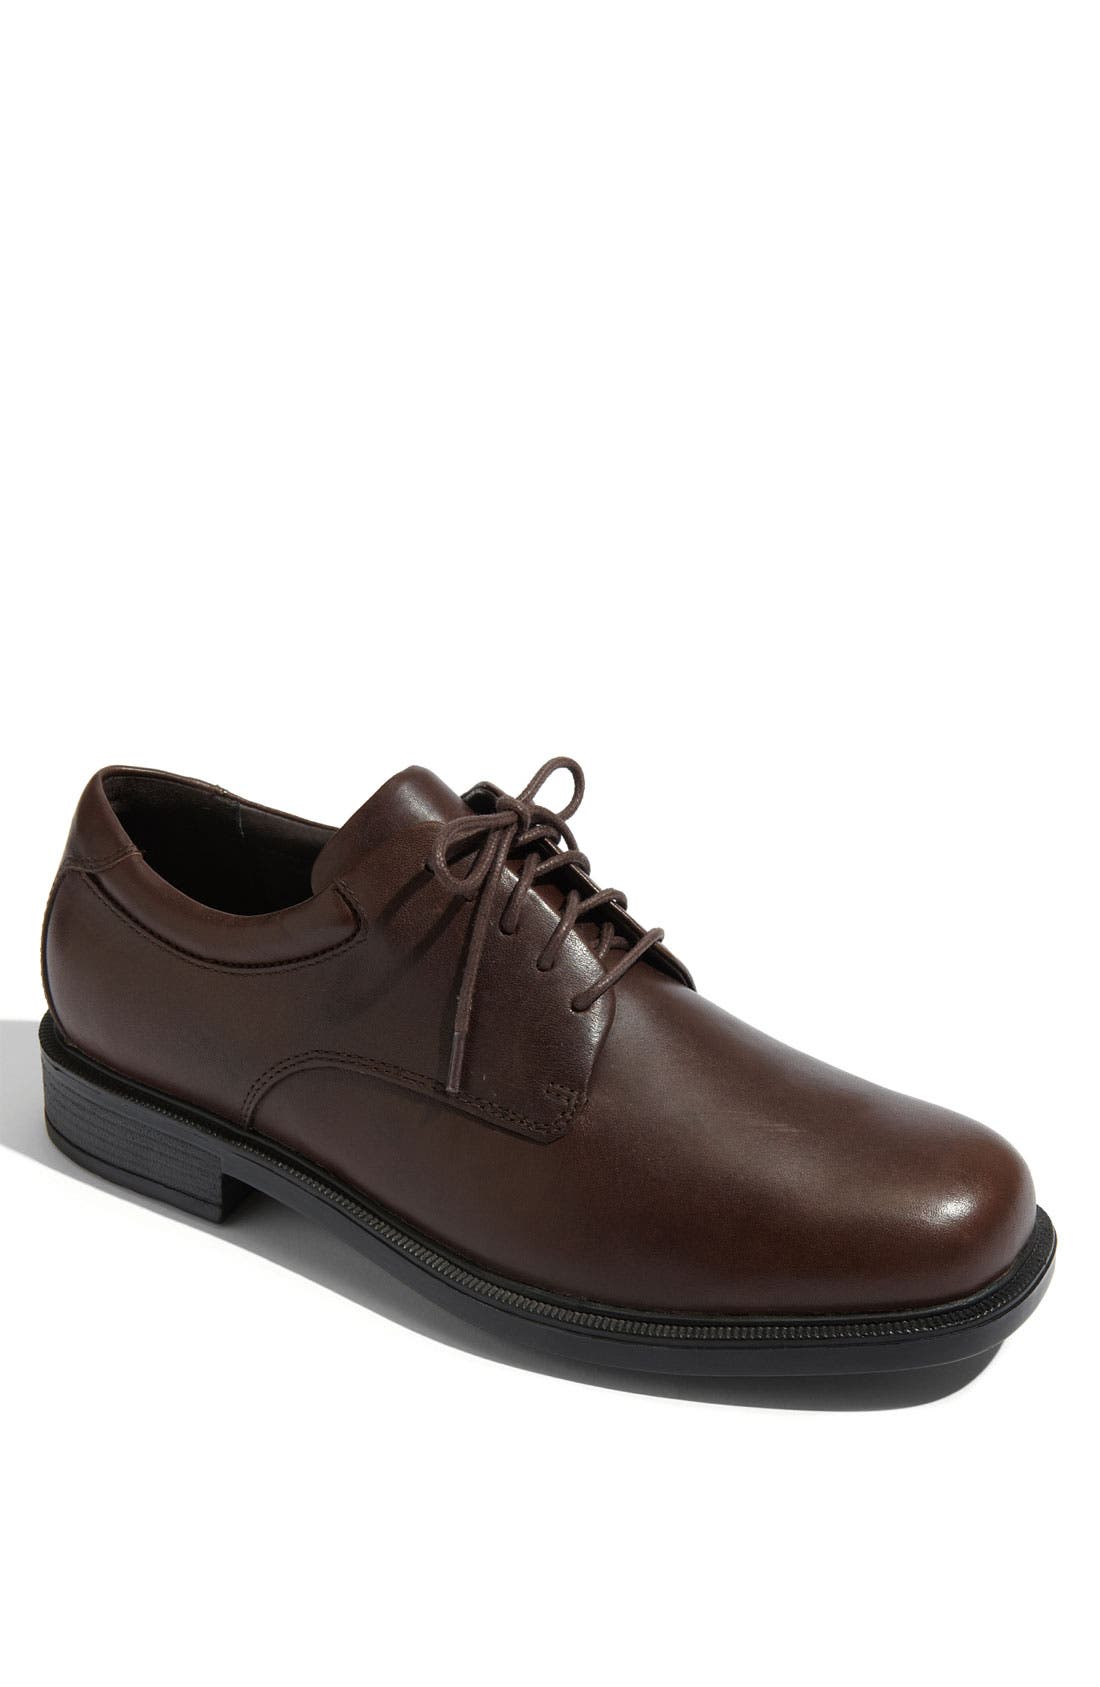 'Margin' Oxford,                         Main,                         color, CHOCOLATE LEATHER